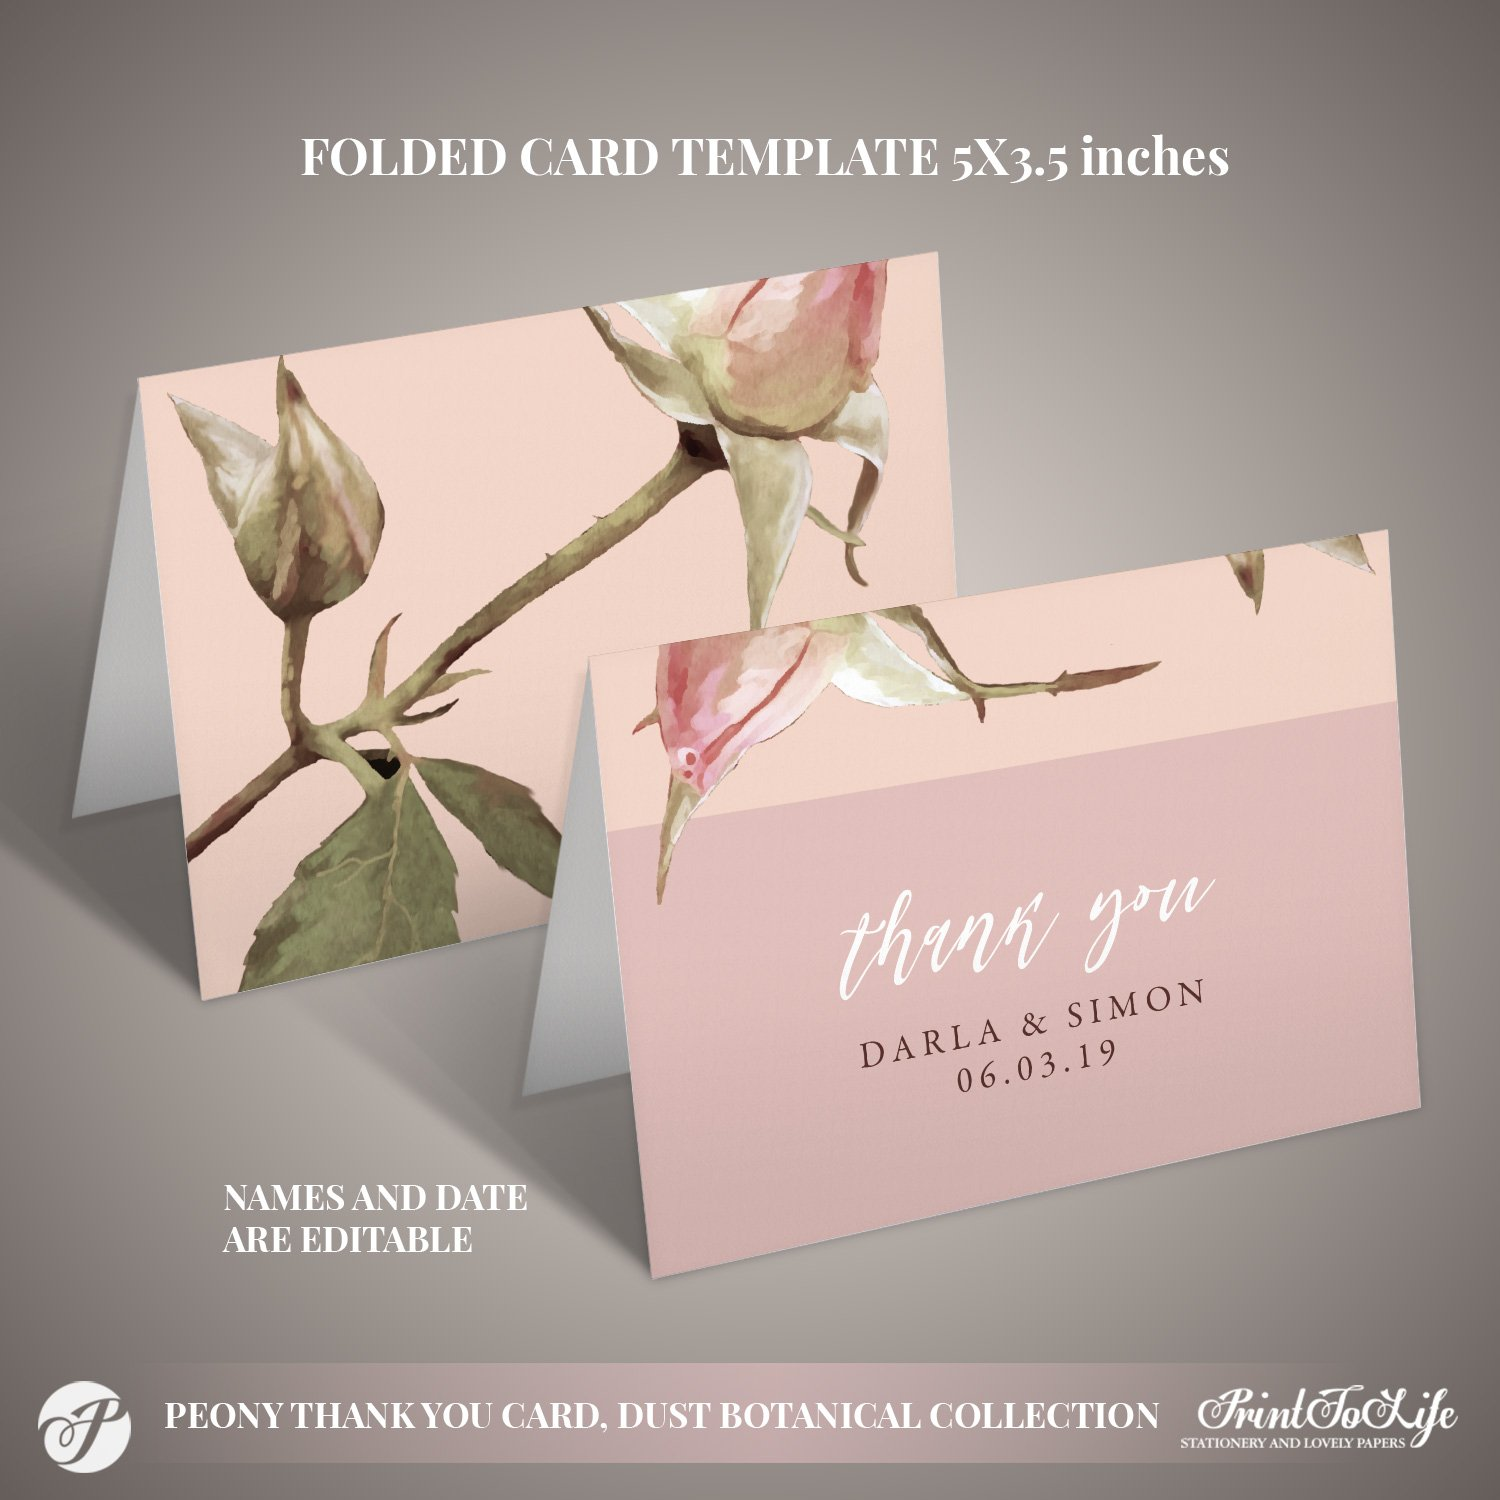 Thank You Card Template by Printolife